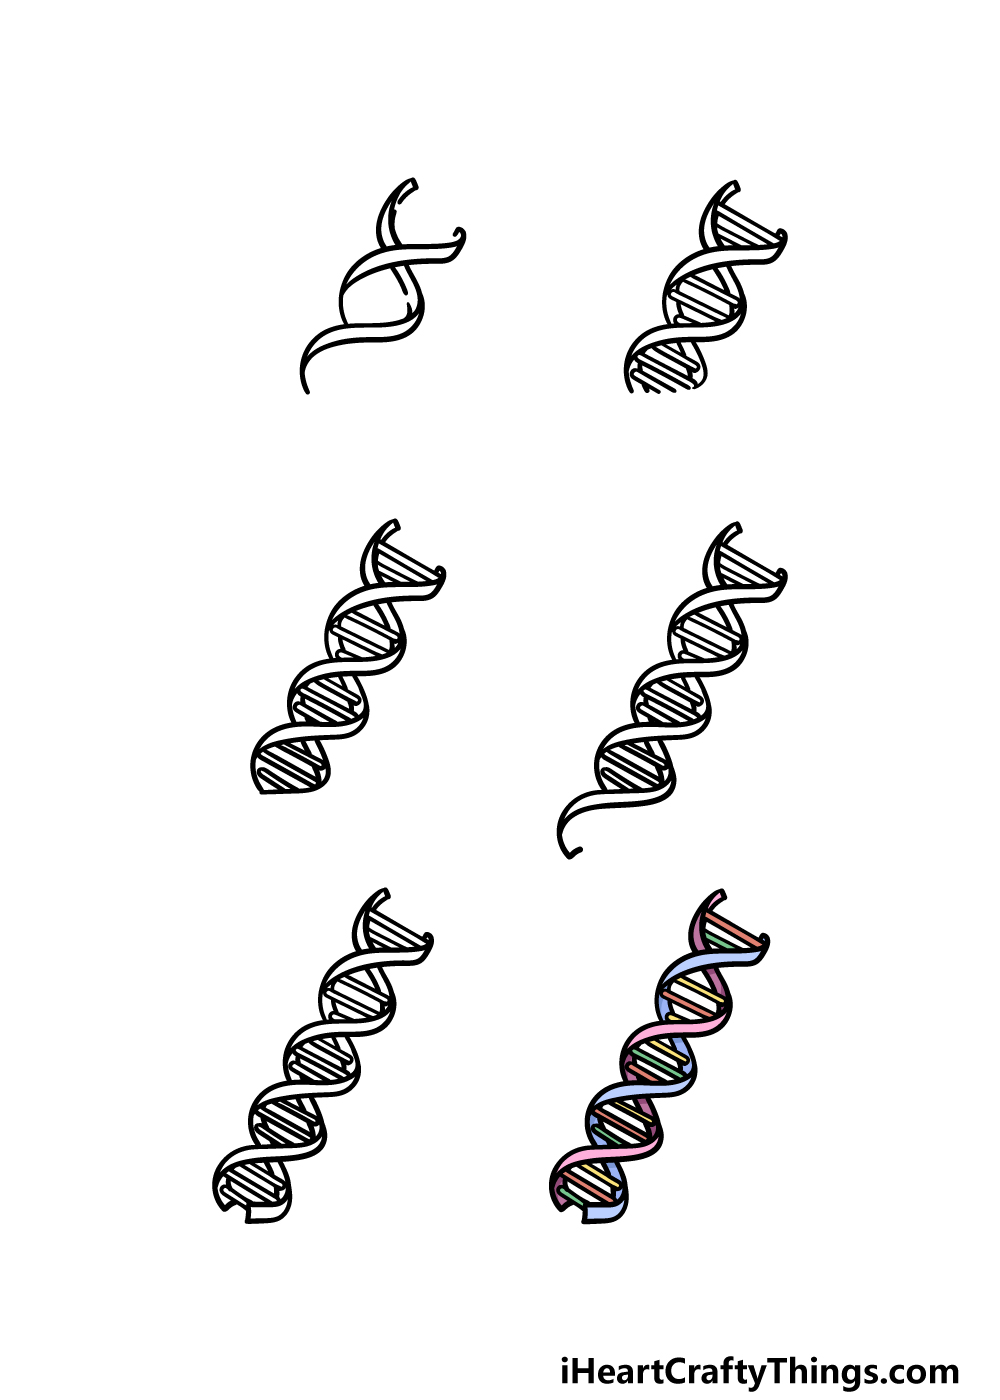 how to draw DNA in 6 steps